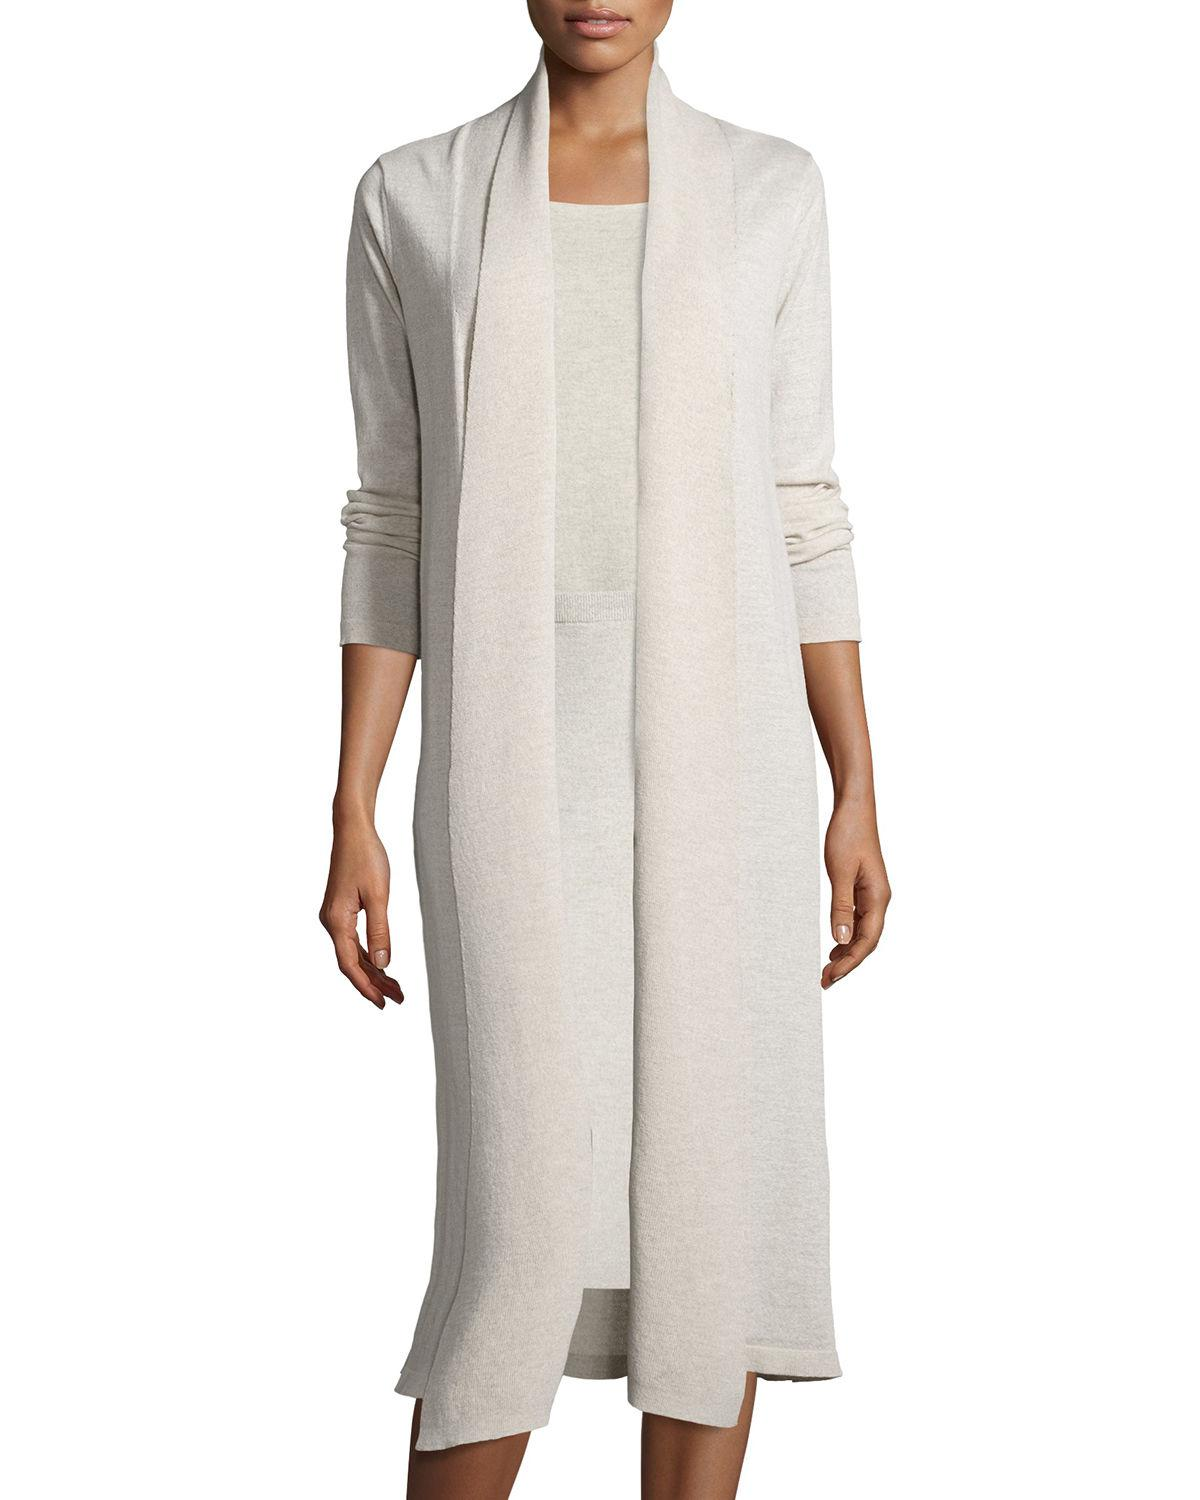 Eileen fisher Washable Wool Kimono Duster Cardigan | Lyst